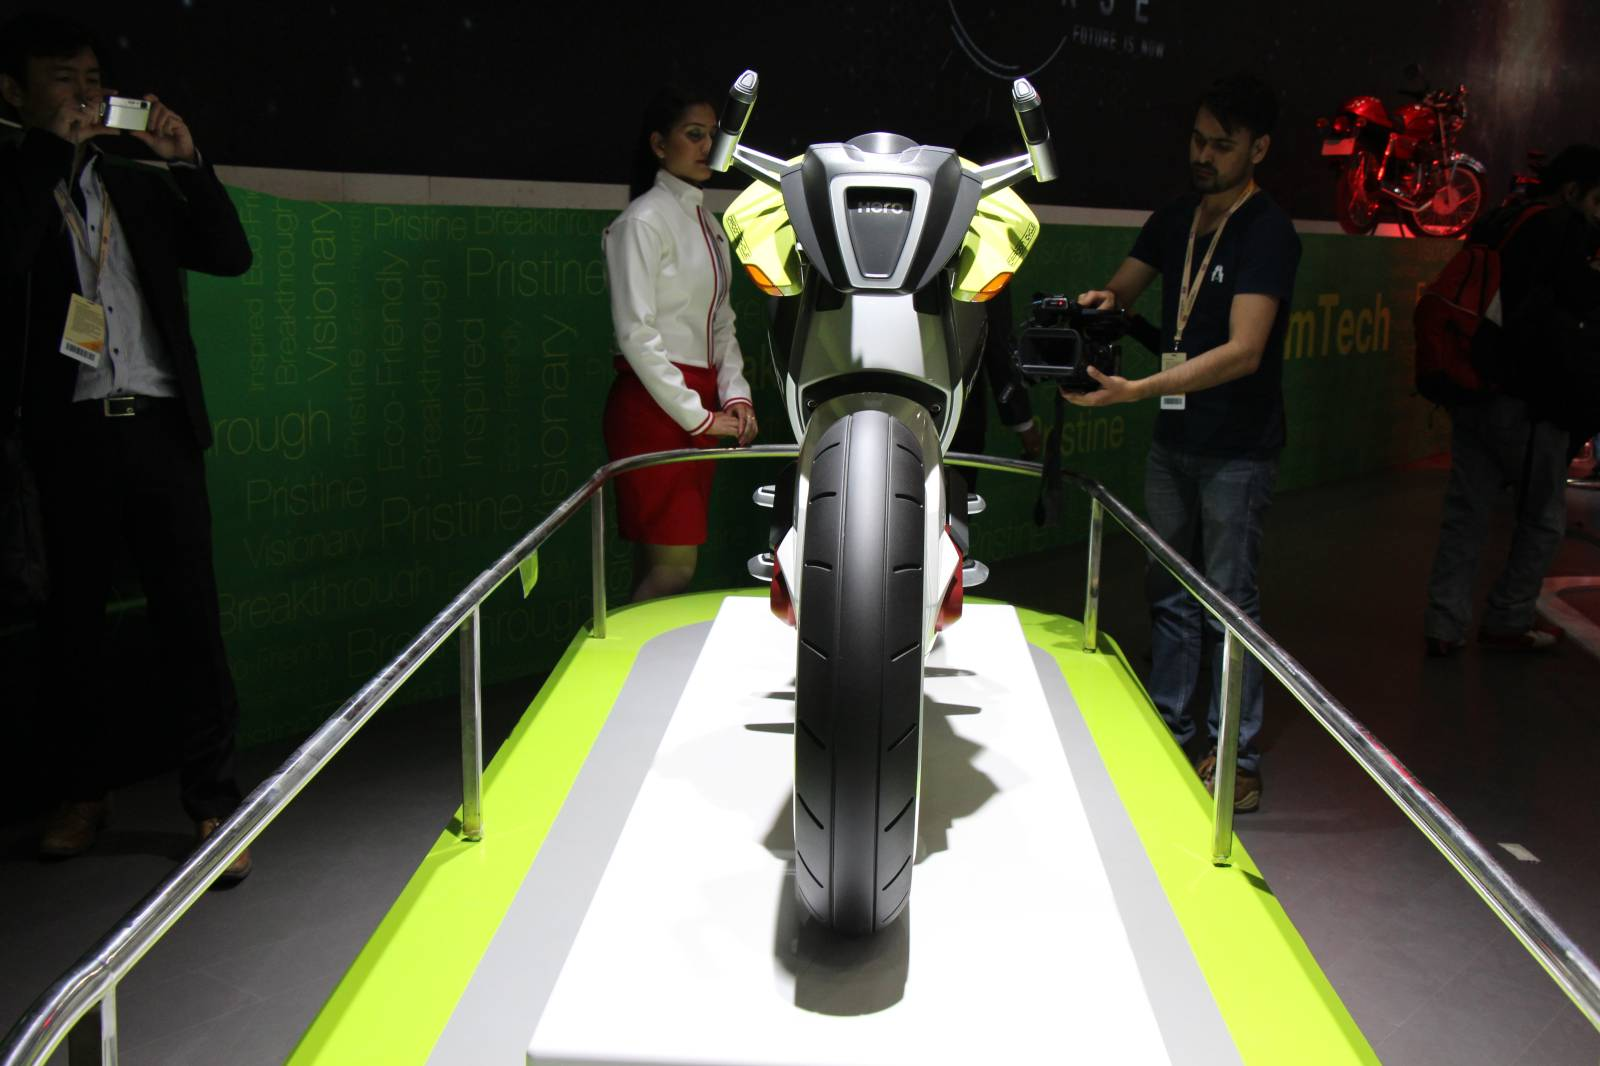 Hero MotoCorp unveils iON hydrogen fuel cell concept